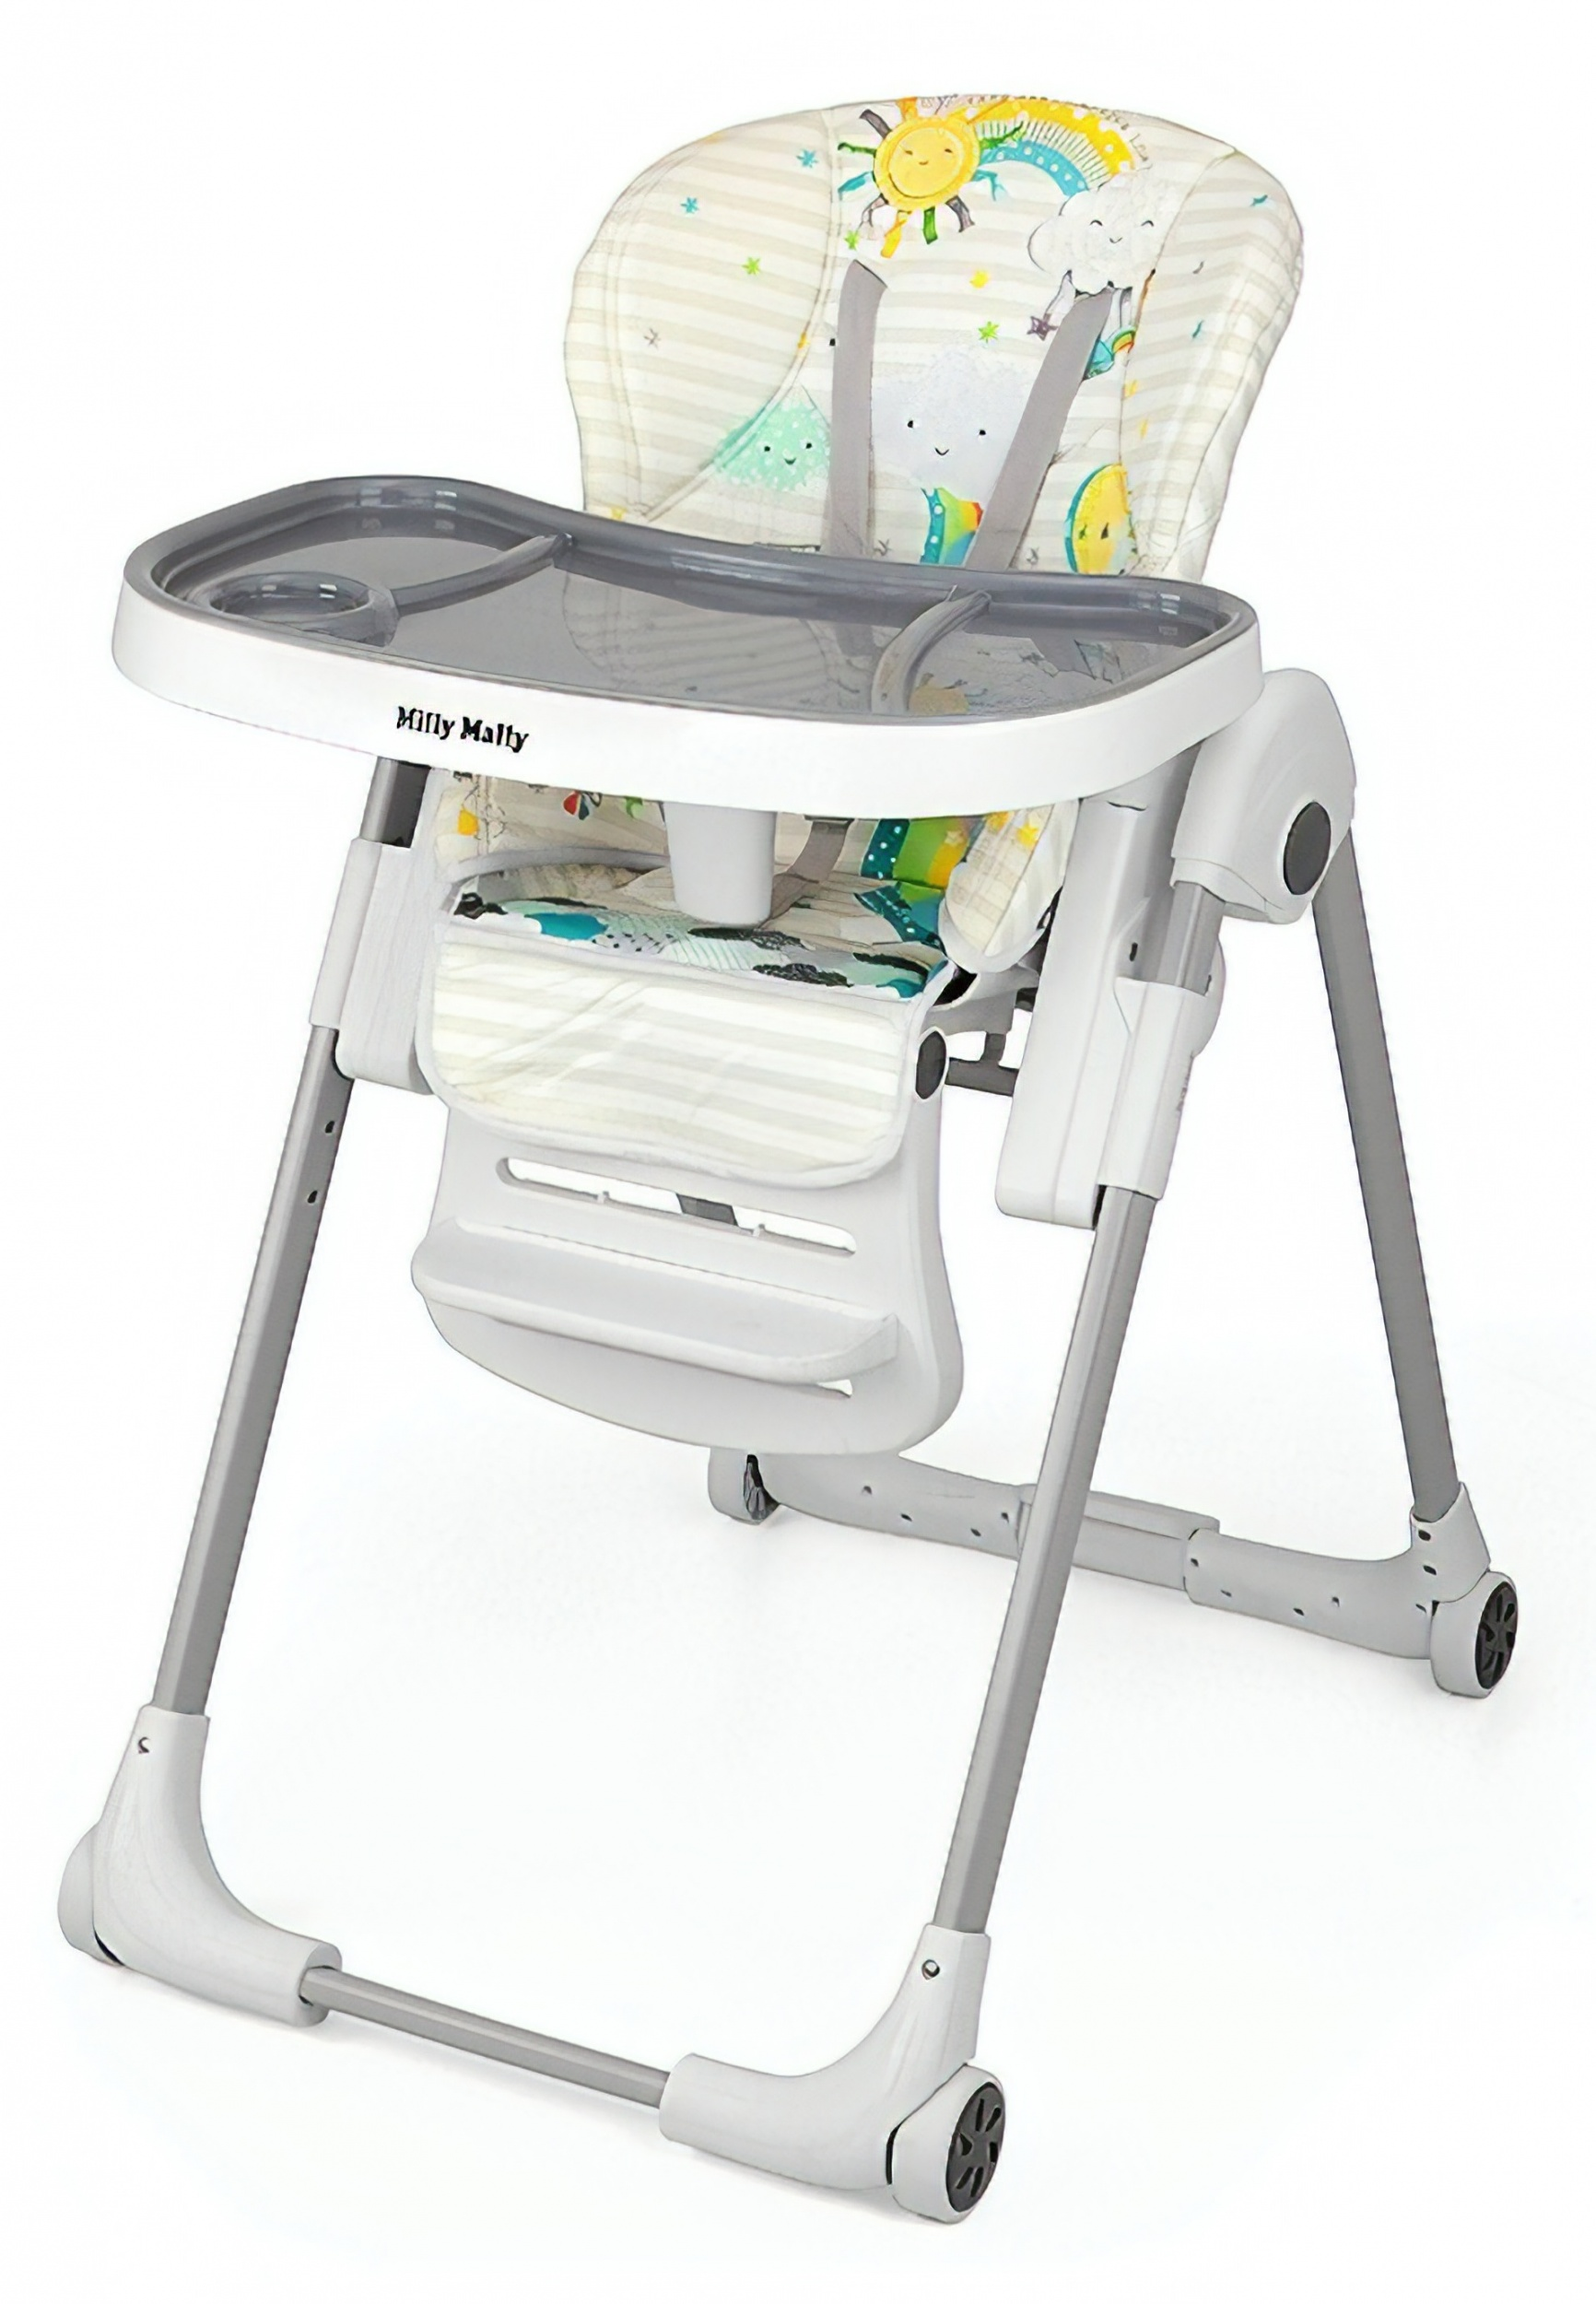 1d722d248f4 Milly Mally high chair Milano Sky102 cm multicolor - Internet-Toys